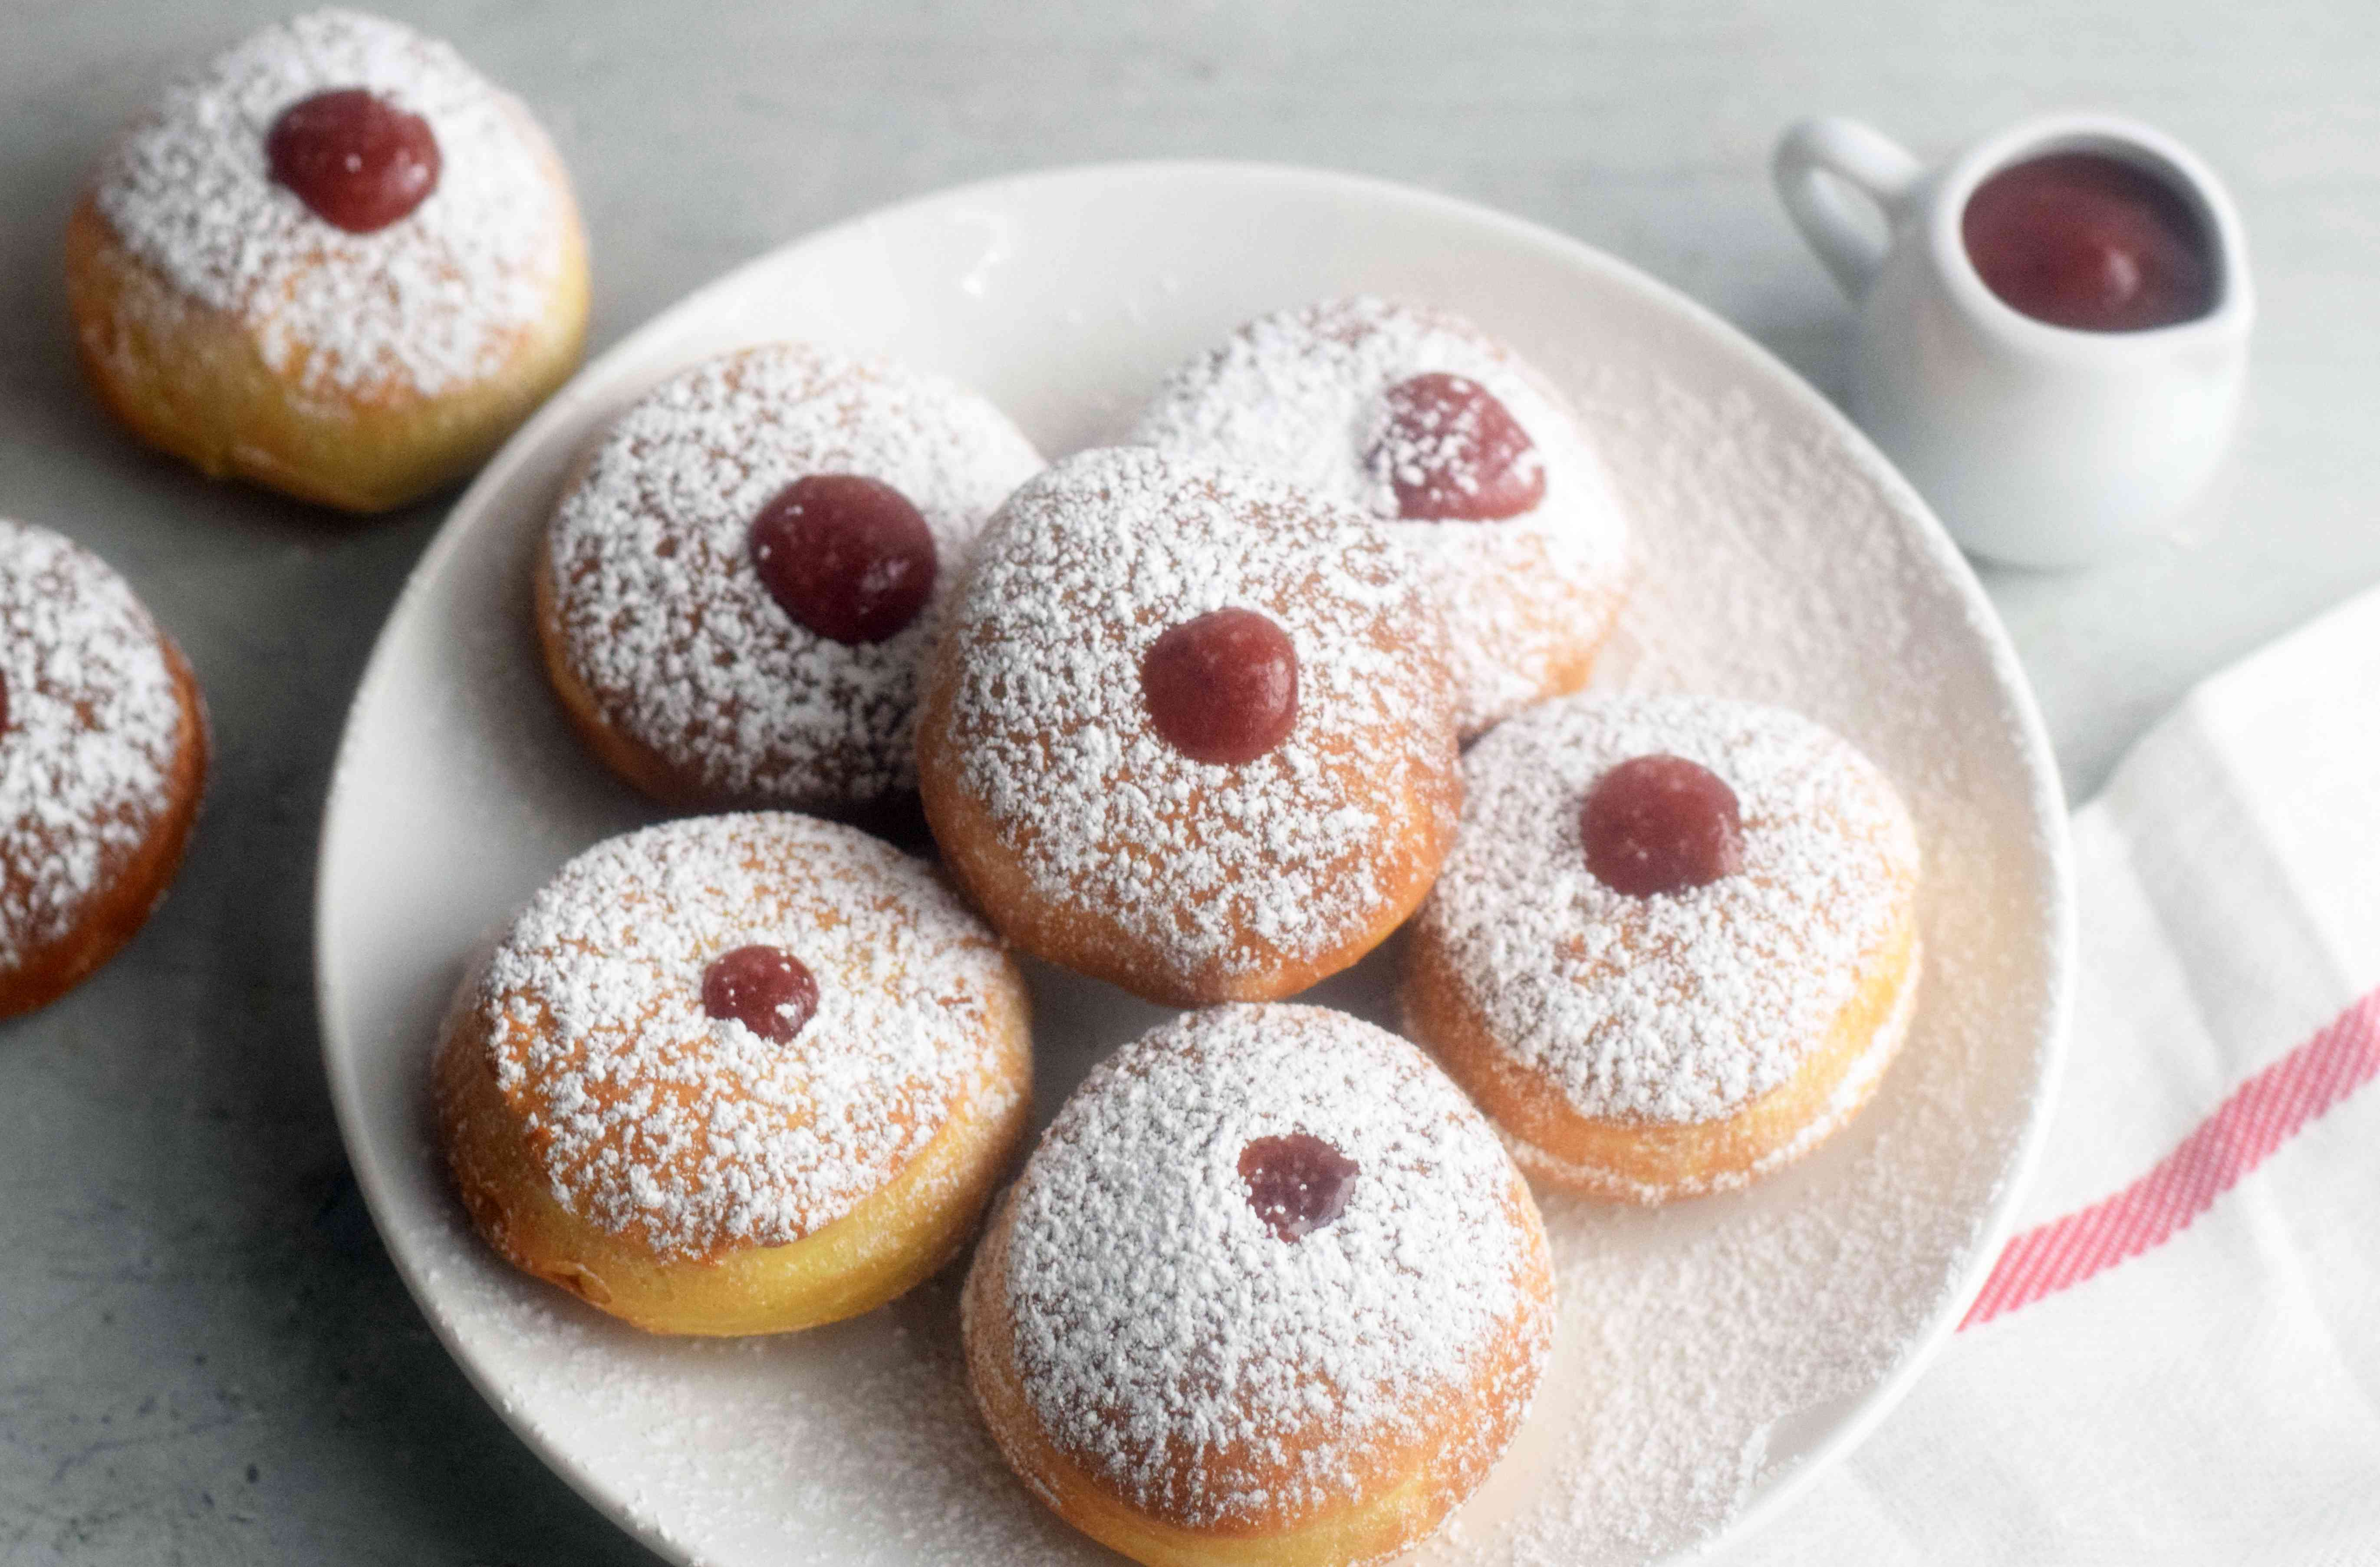 A plate of air-fried sufganiyot jelly doughnuts